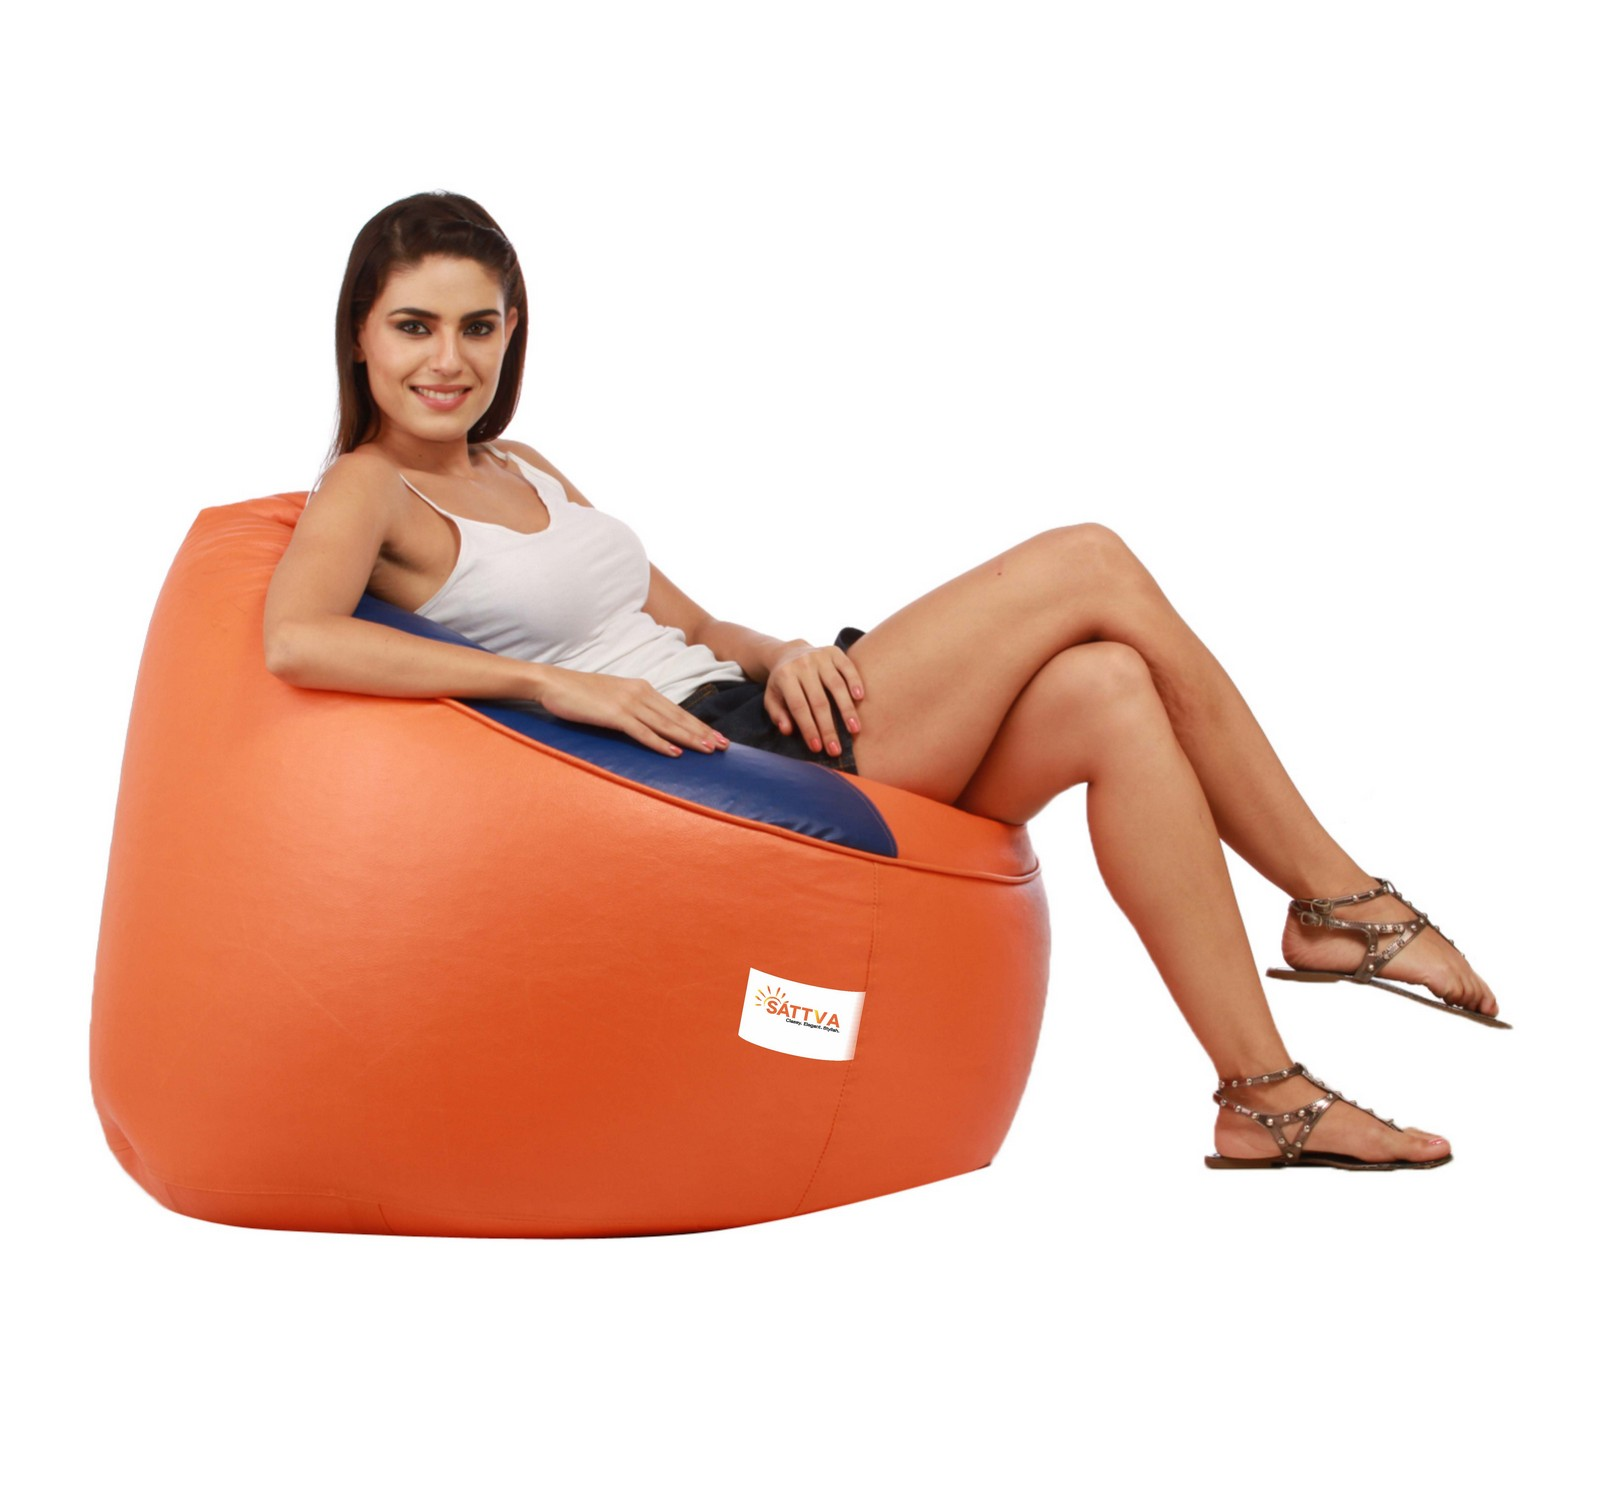 Sattva Muddha Sofa XXXL Bean Bag (with Beans) Dual Colour XXXL - Black Red (XXXL, Orange Royal Blue)